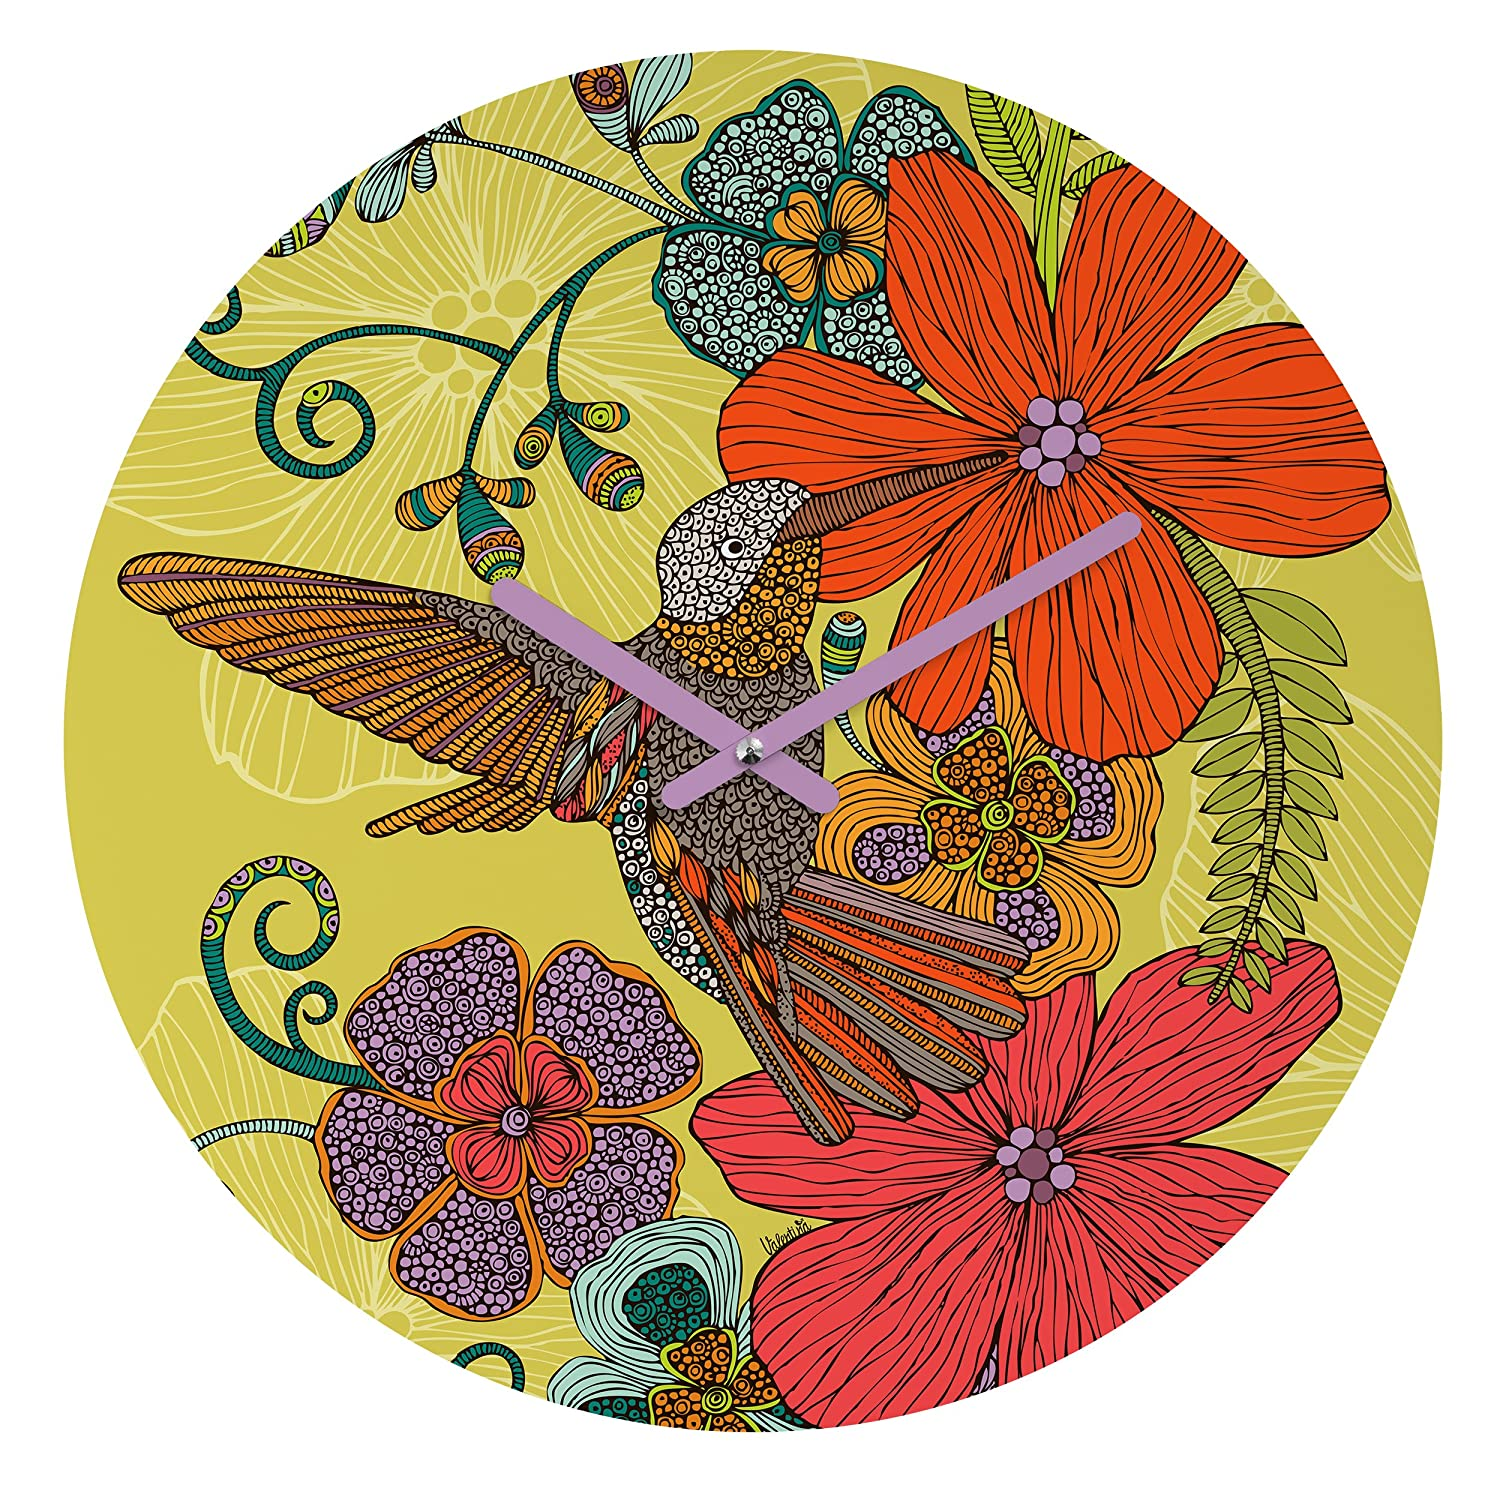 Deny Designs Valentina Ramos, Ruby The Elephant, Round Clock, Round, 12 12 39231-roucls